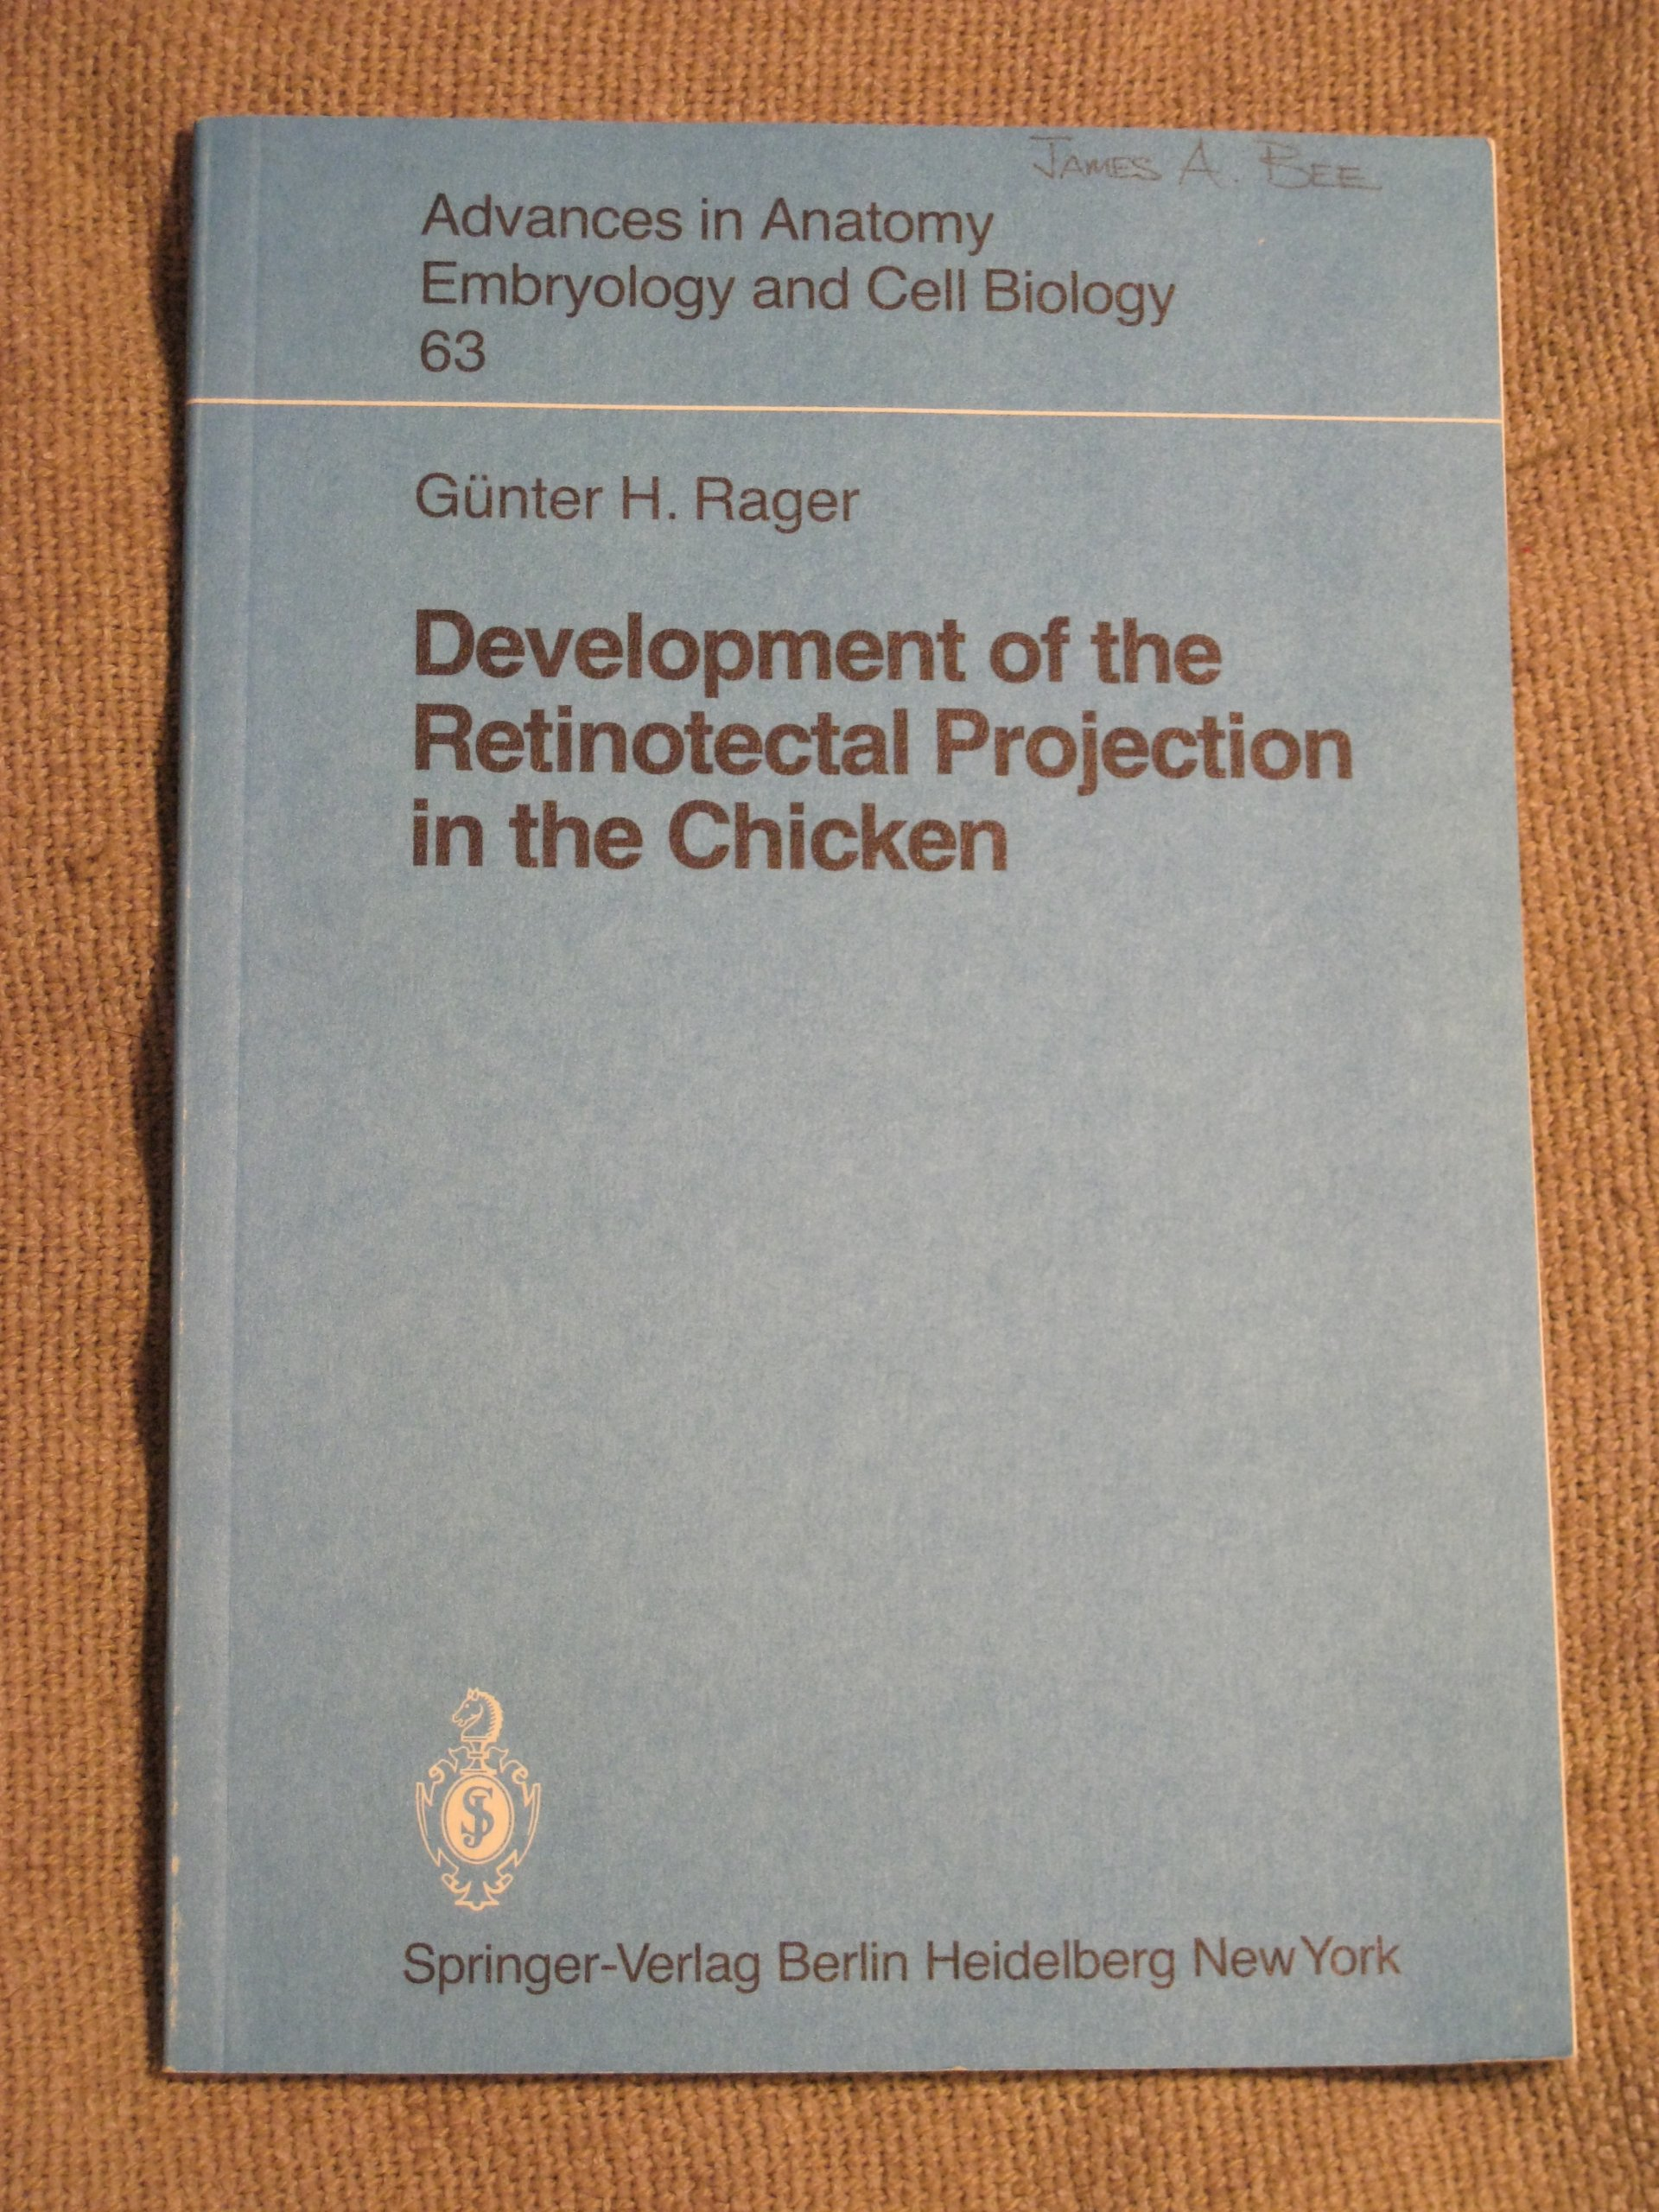 Development of the Retinotectal Projection in the Chicken